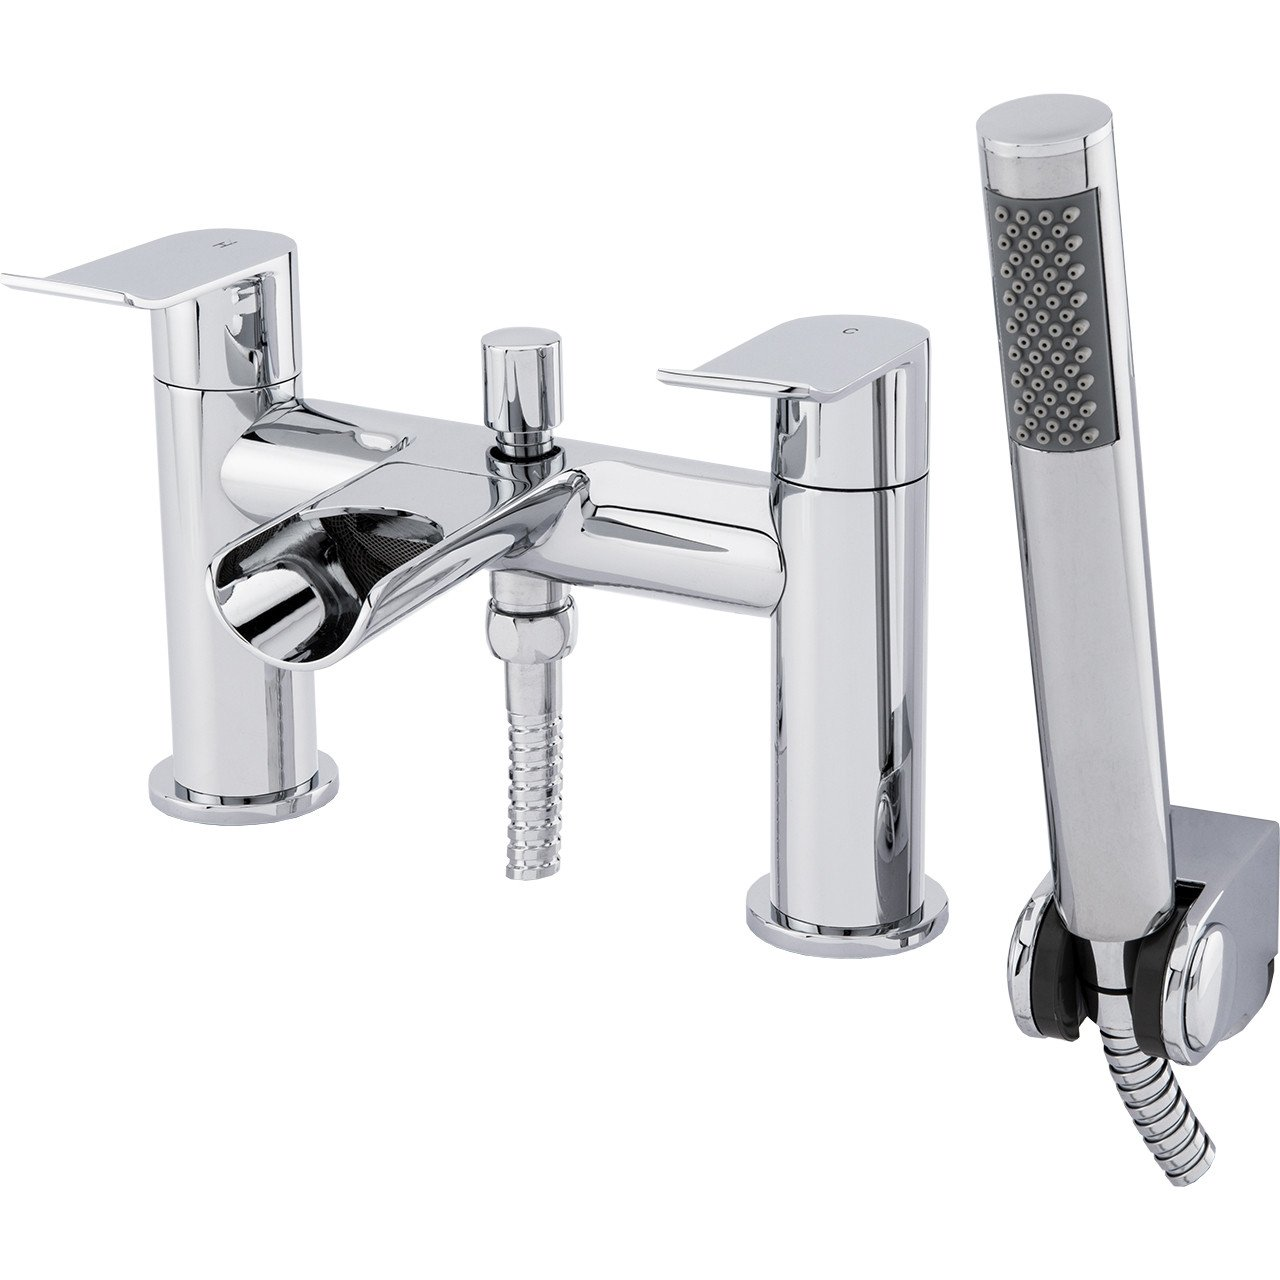 Stream Waterfall Bath Shower Mixer Tap & Kit